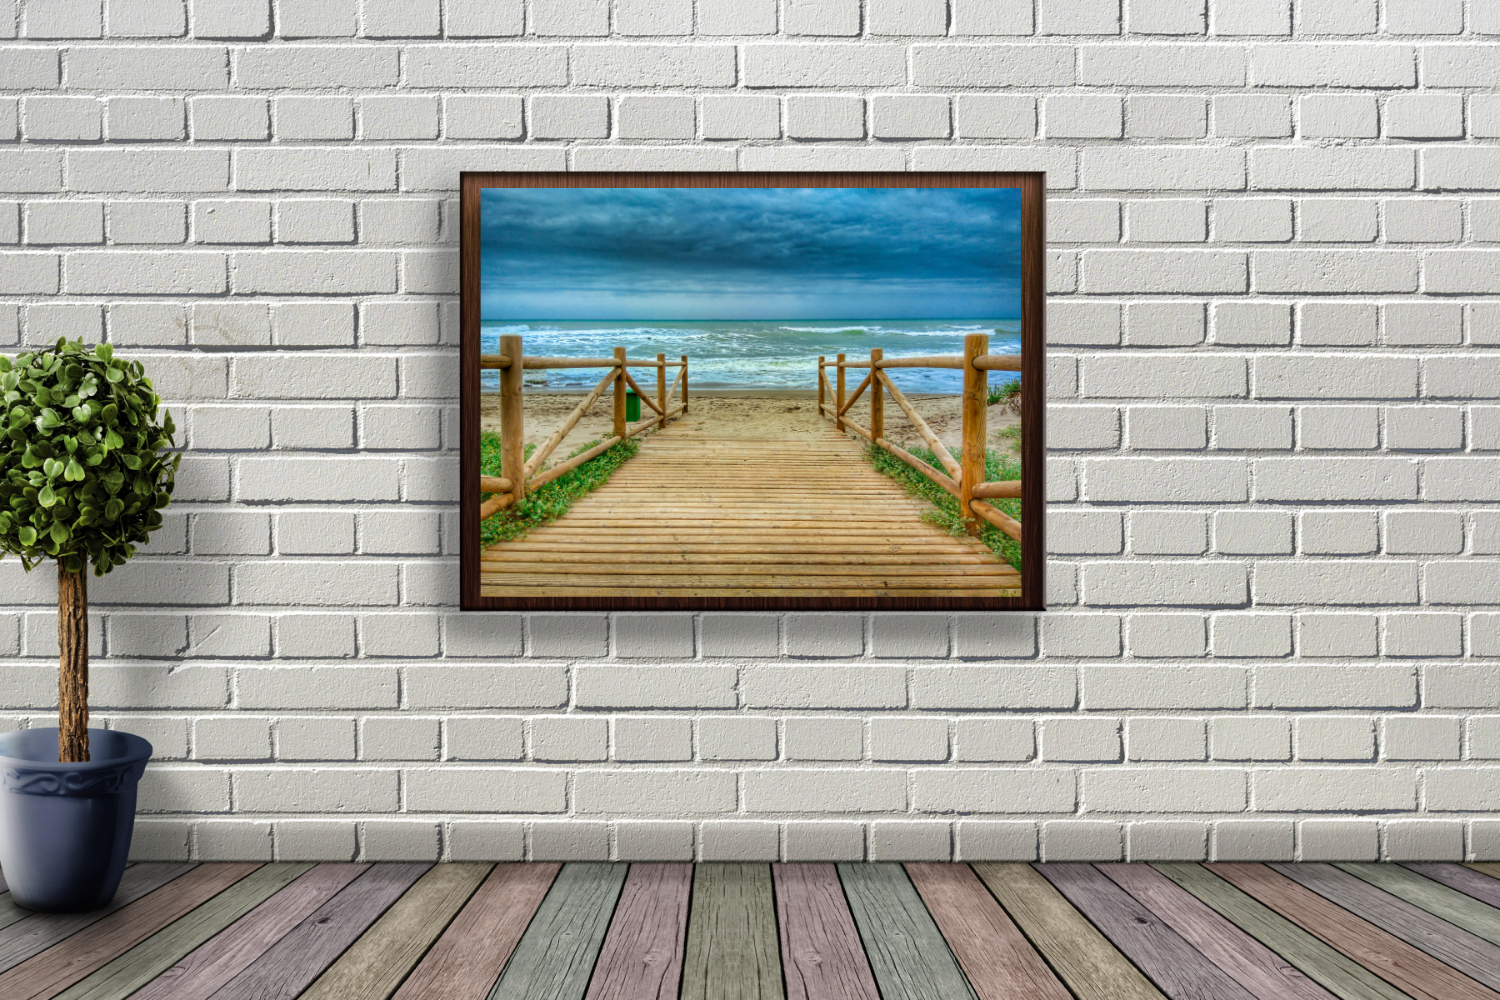 Wooden Promenade On The Beach example image 3